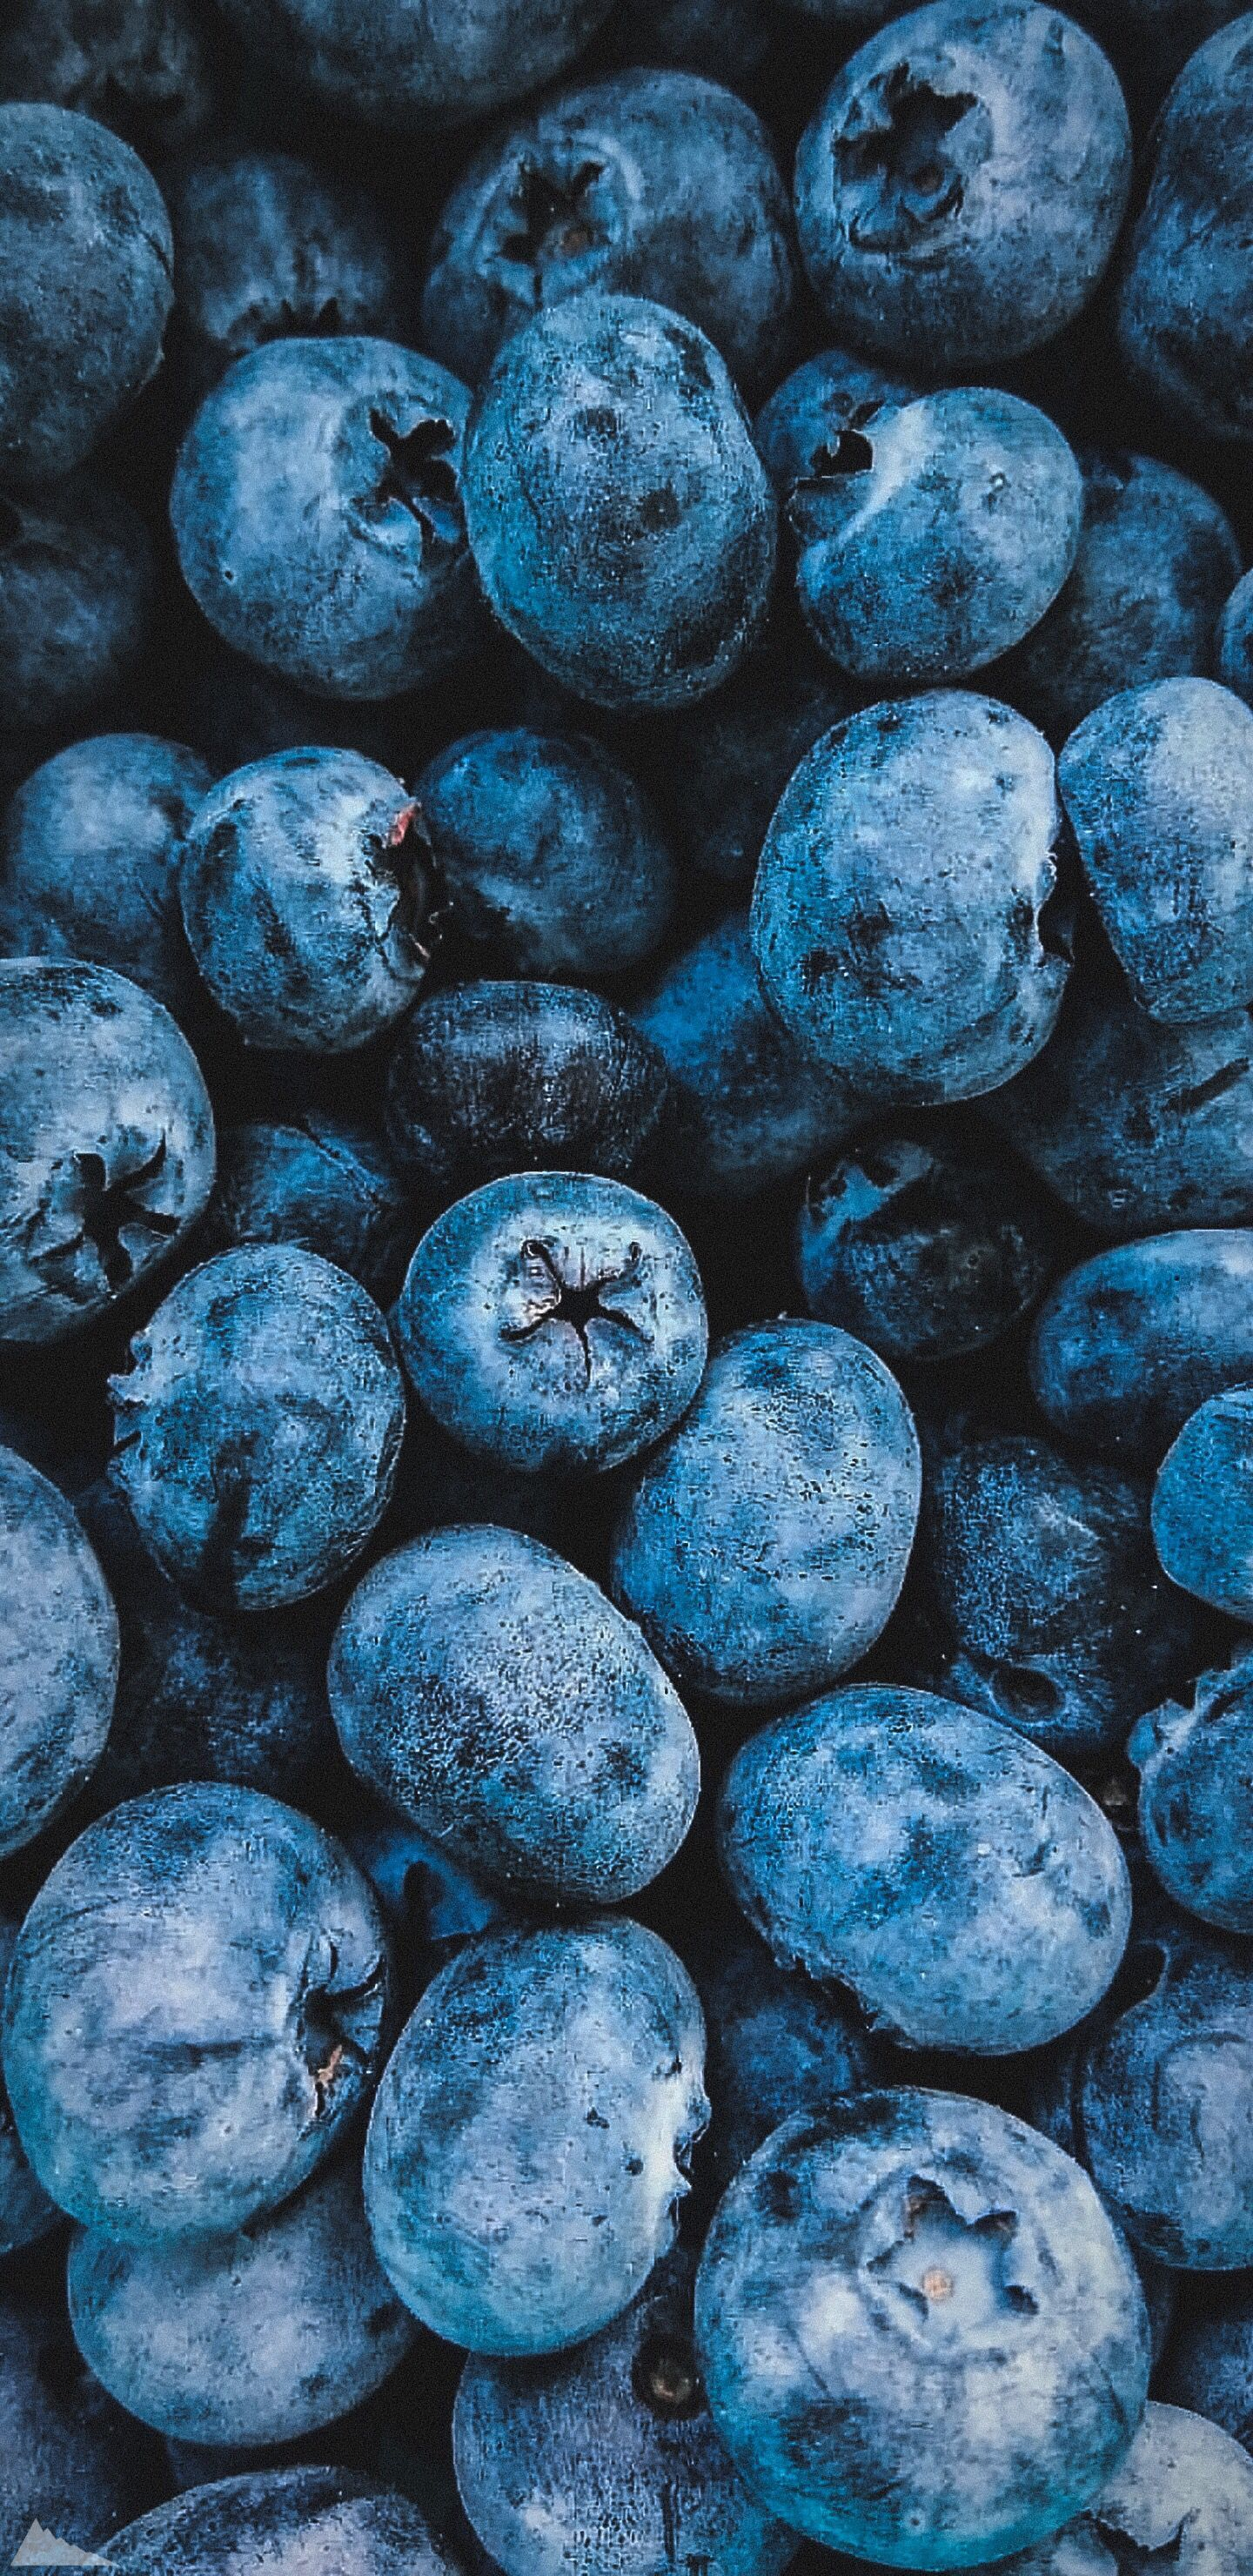 Wallpapers | Blueberries #lockscreeniphone # oboinatelefon wallpaper # # # oboidlyatelefona